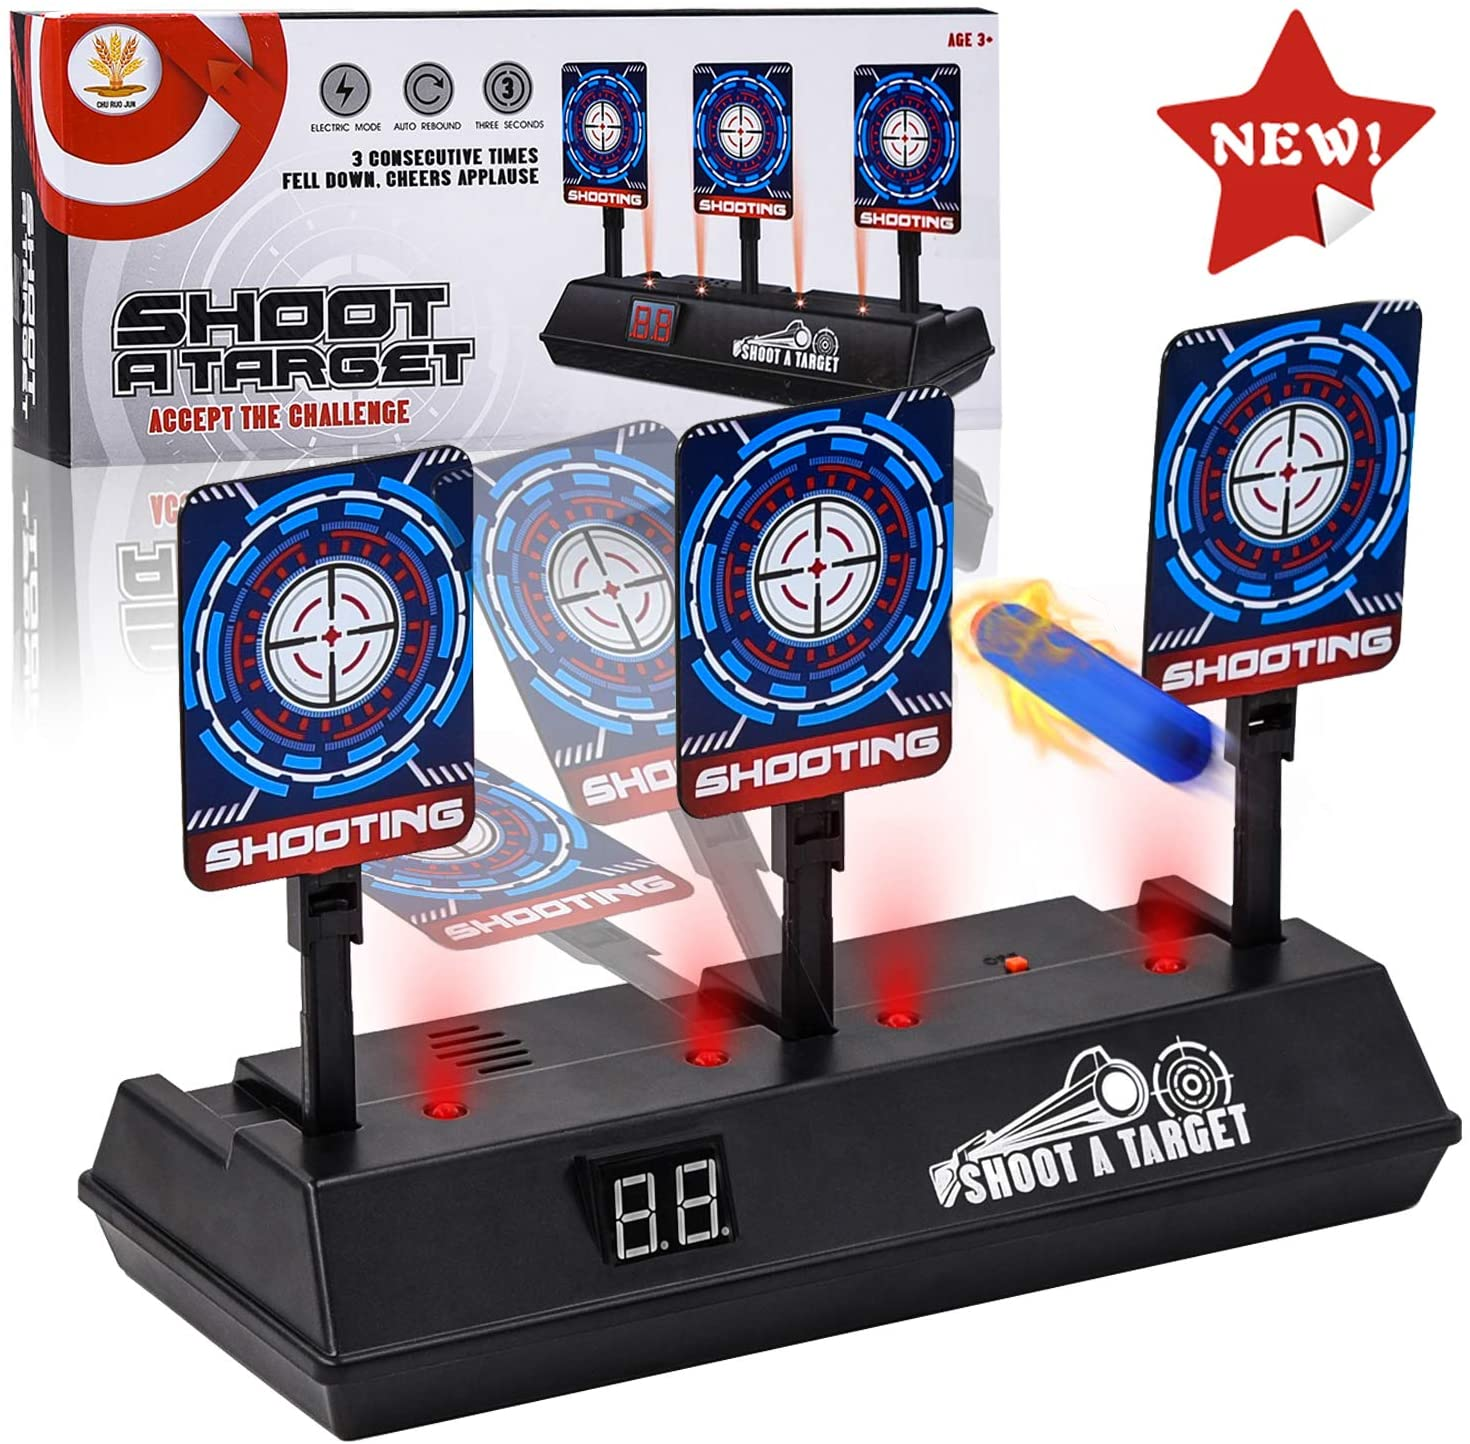 SWEE Electric Scoring Auto Reset Shooting Digital Target for Nerf Guns Blaster Elite/Mega/Rival Series